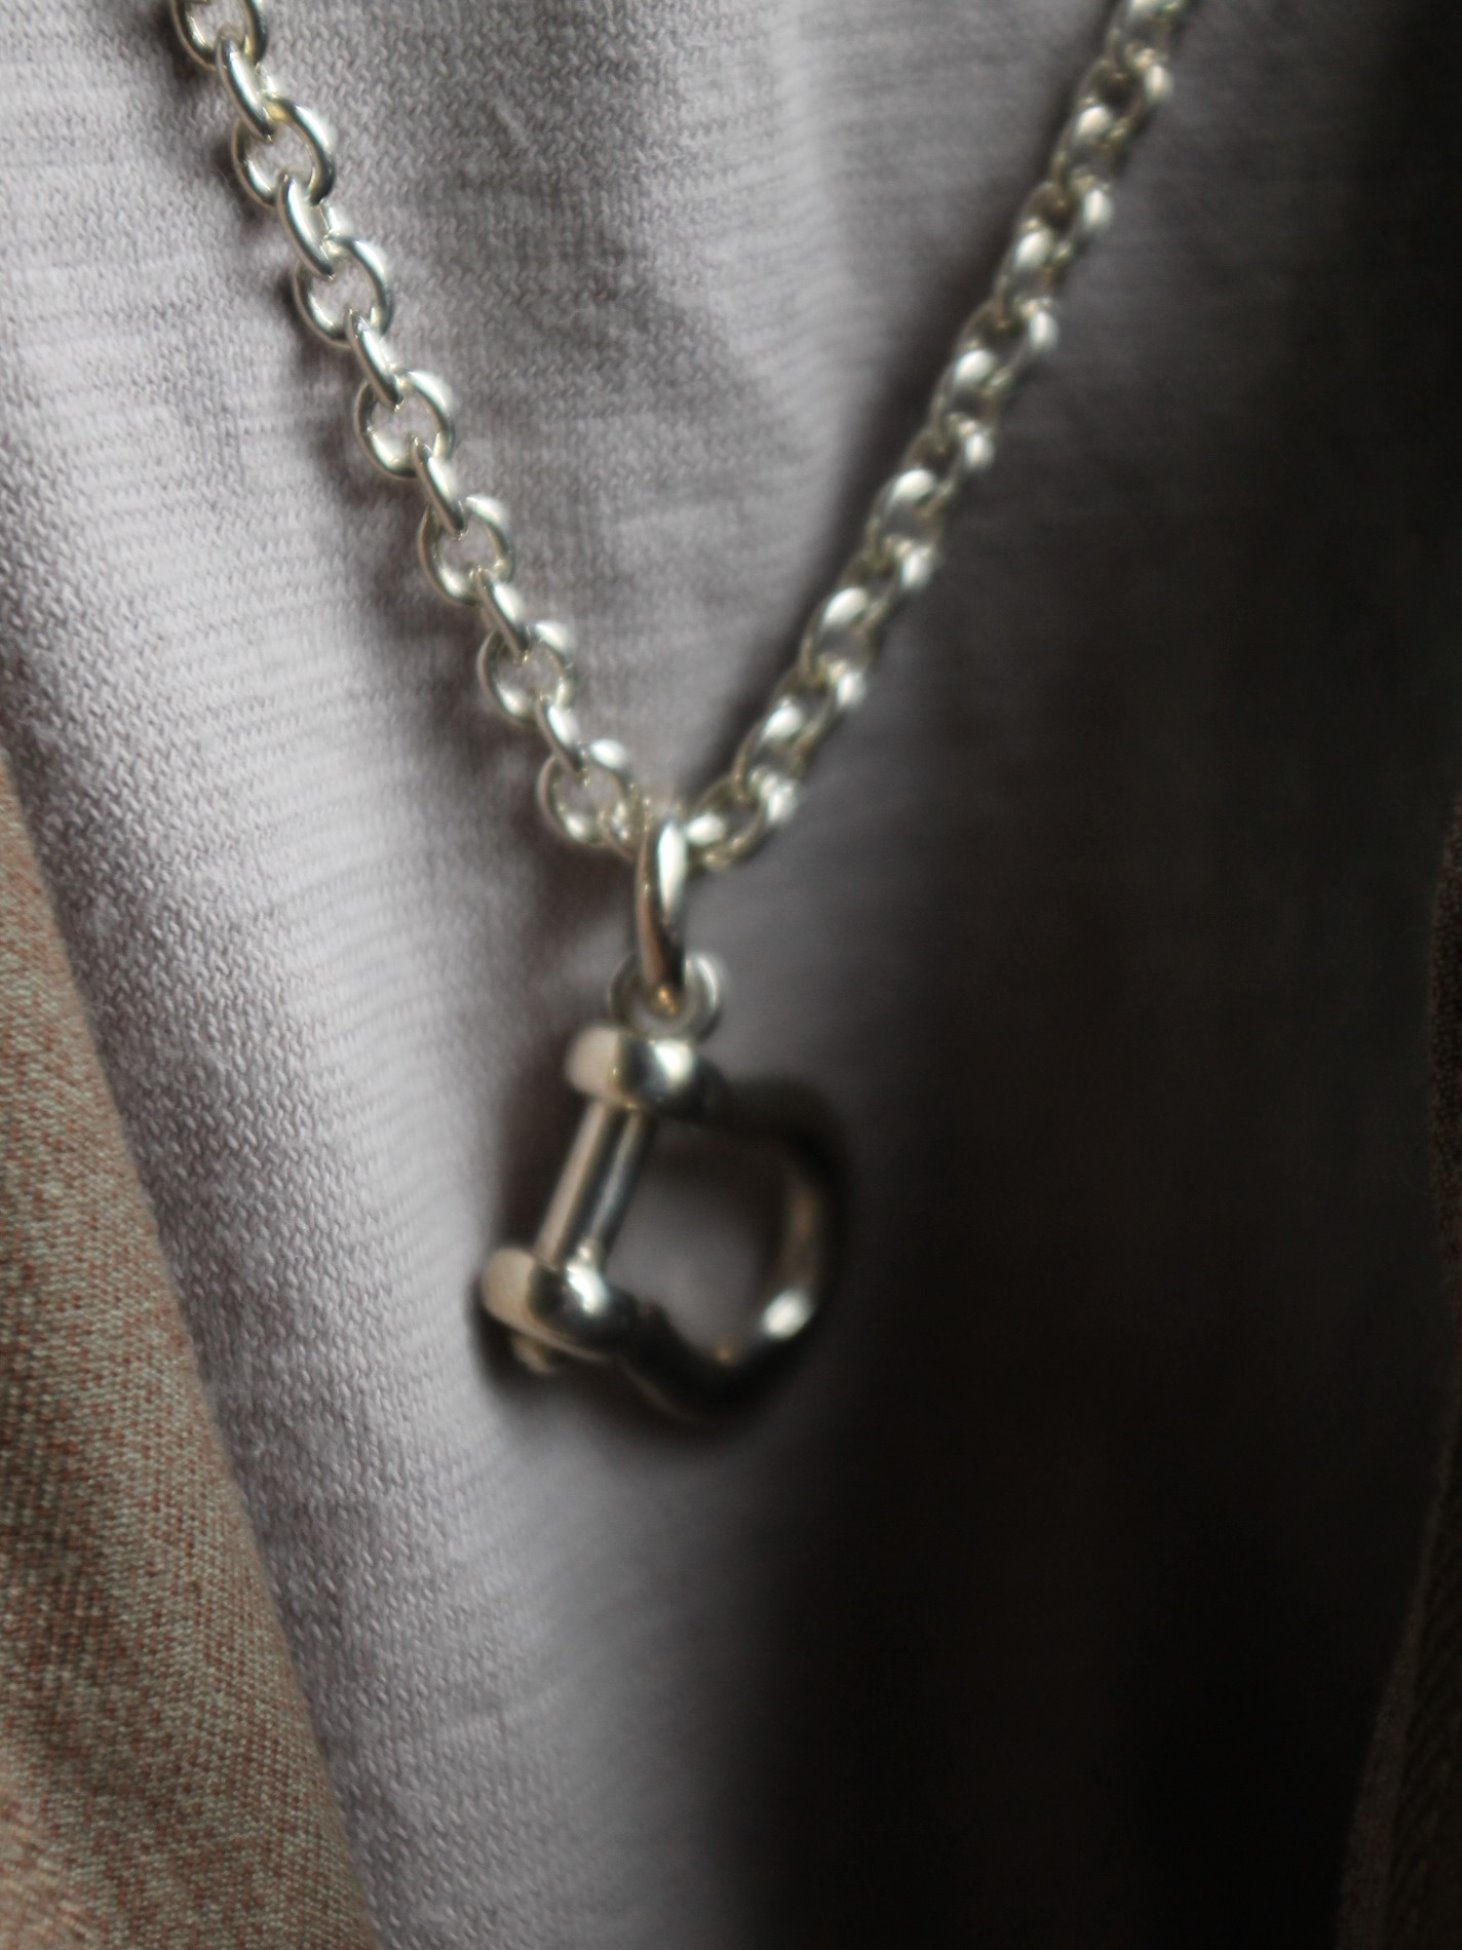 [hitch-net] Segment 01 Necklace